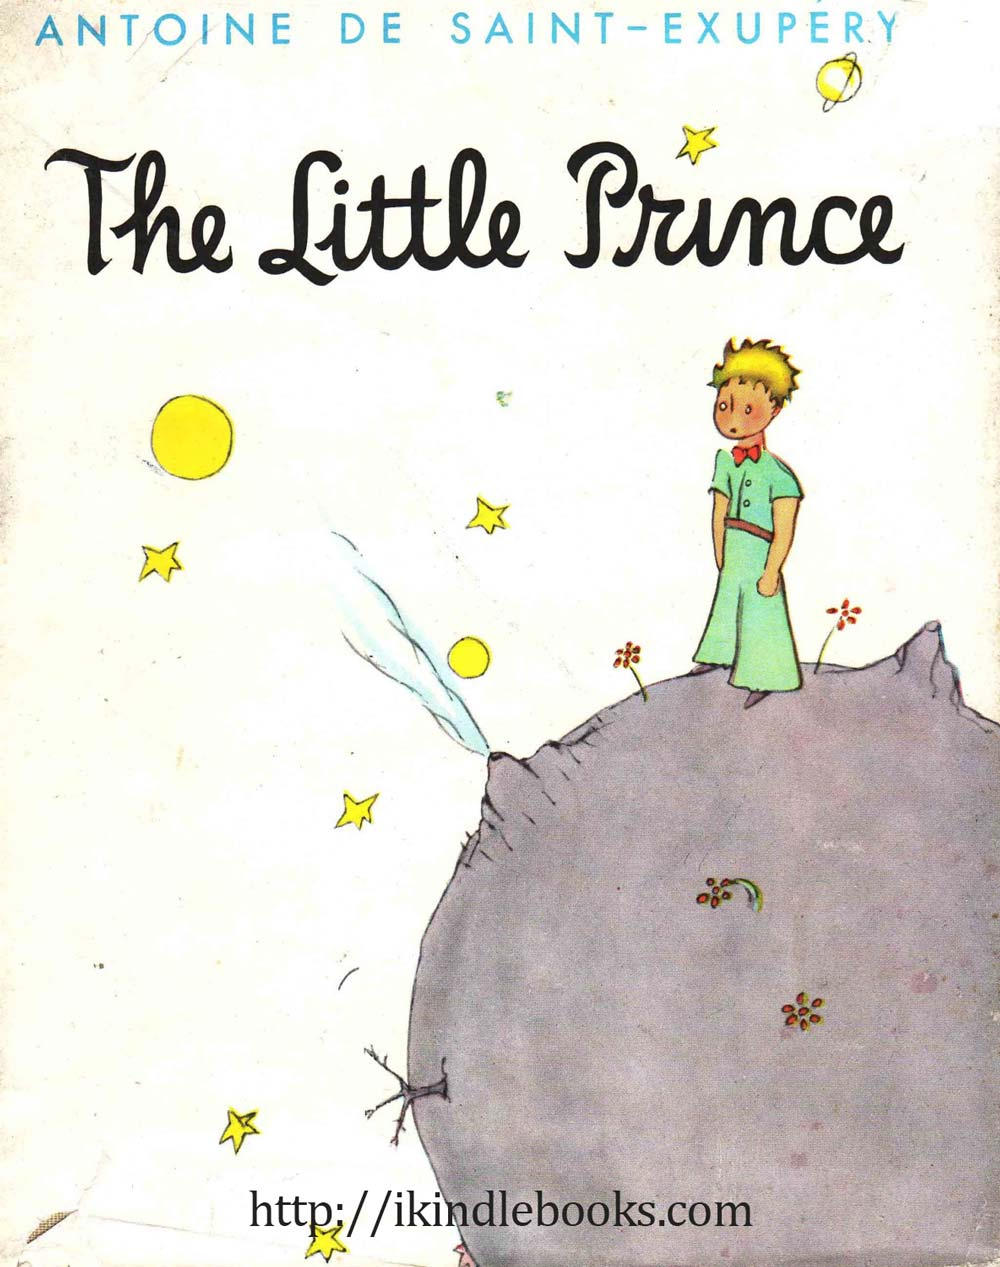 Little prince in english скачать pdf